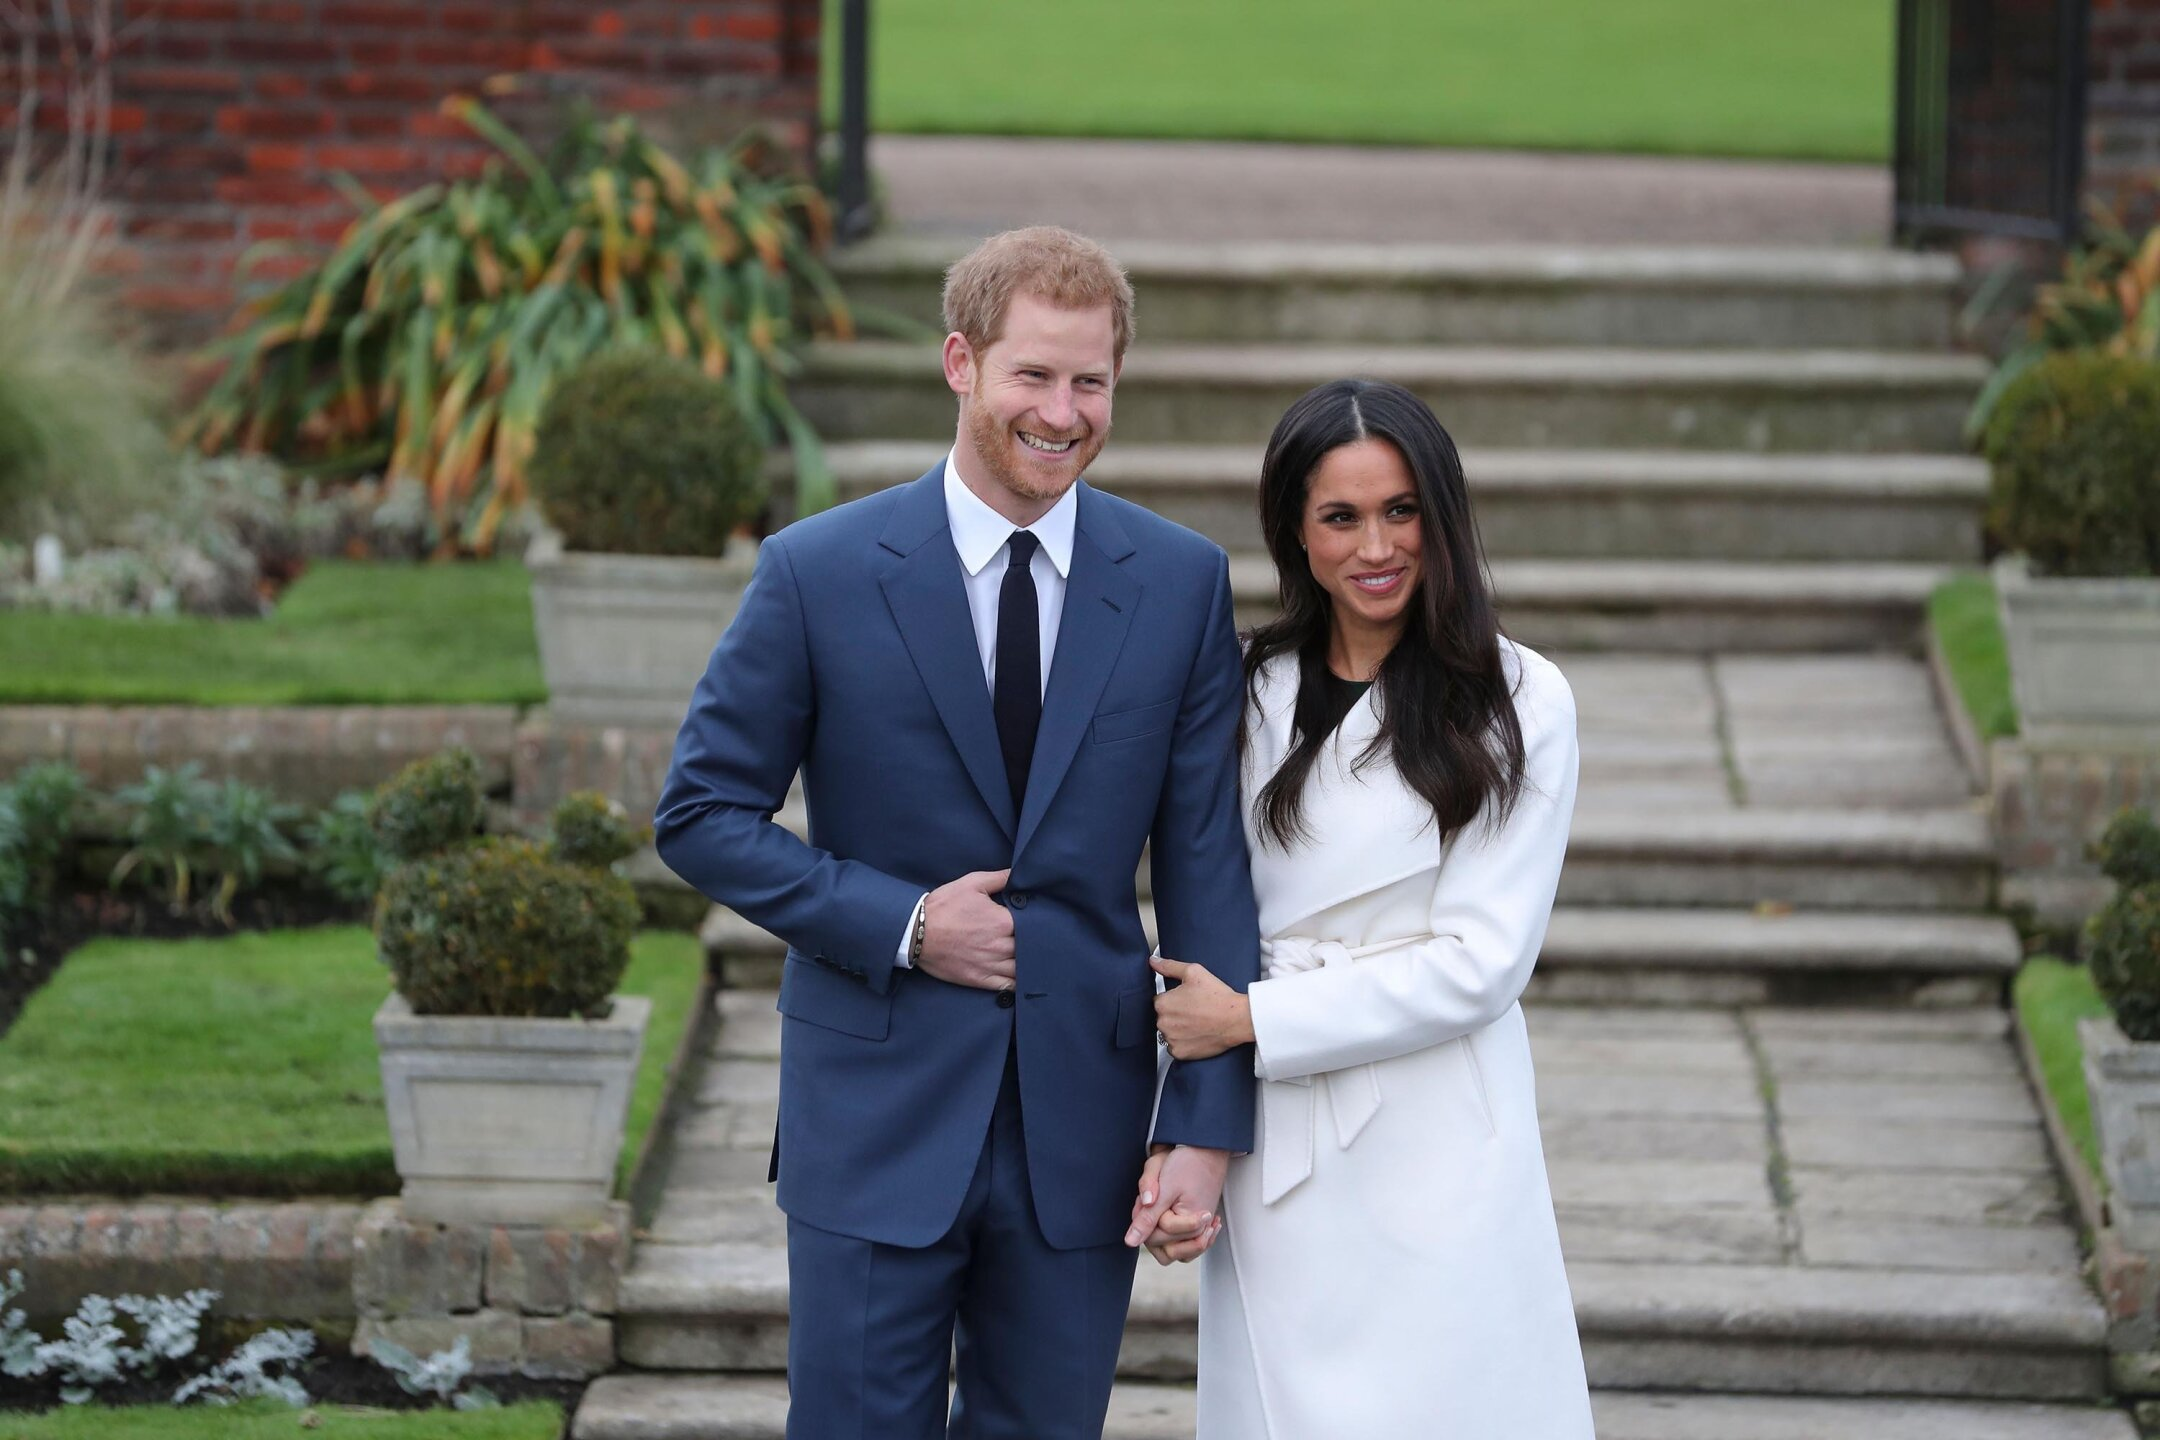 Photos: How much does a royal wedding cost?